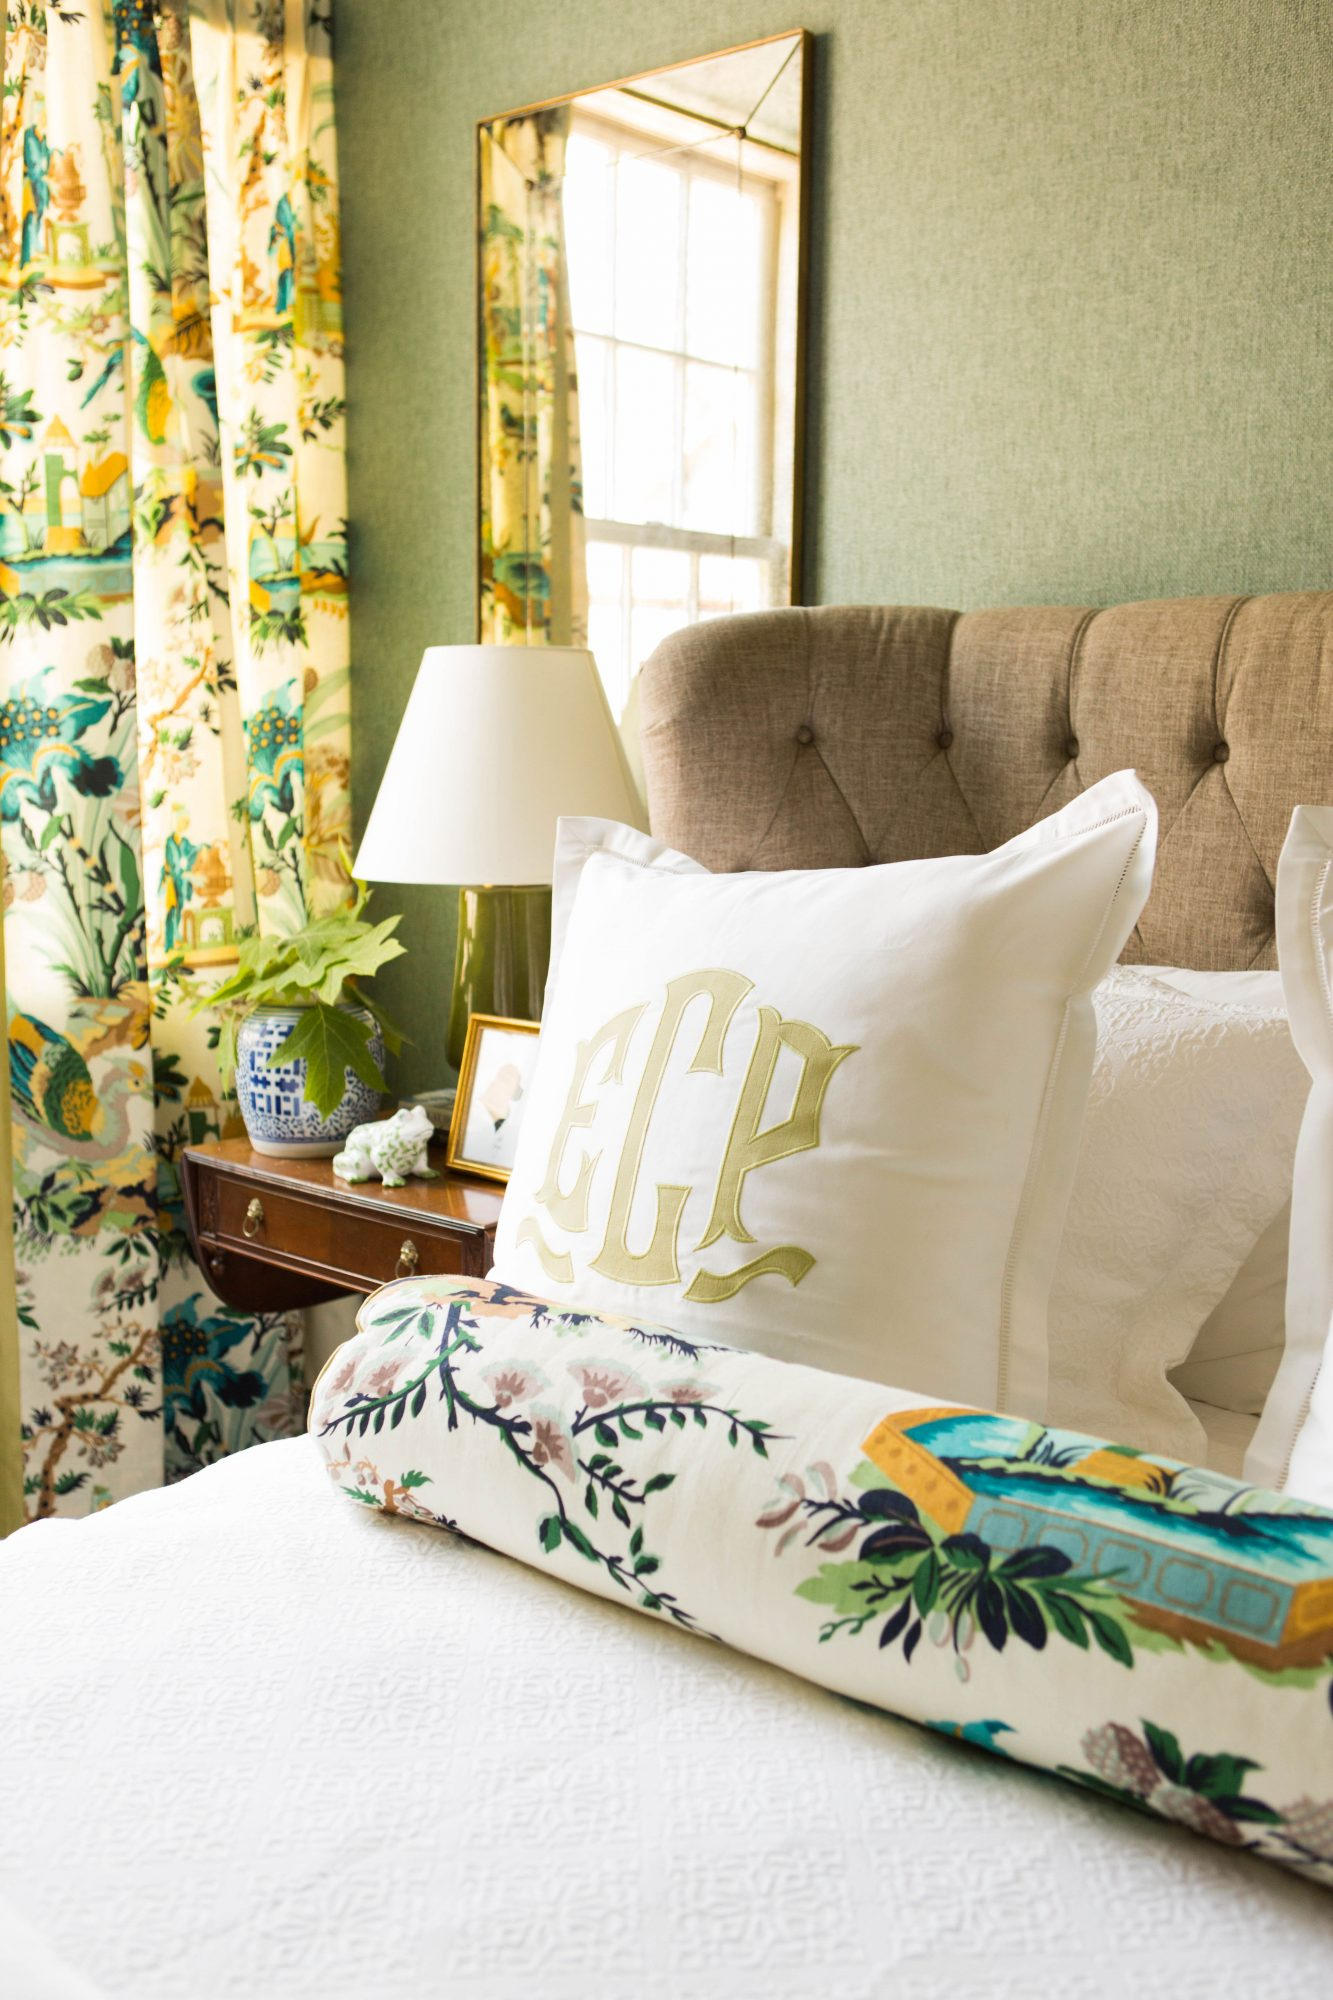 Image of: Southern Living Bed And Bath From Dillard S Southern Living